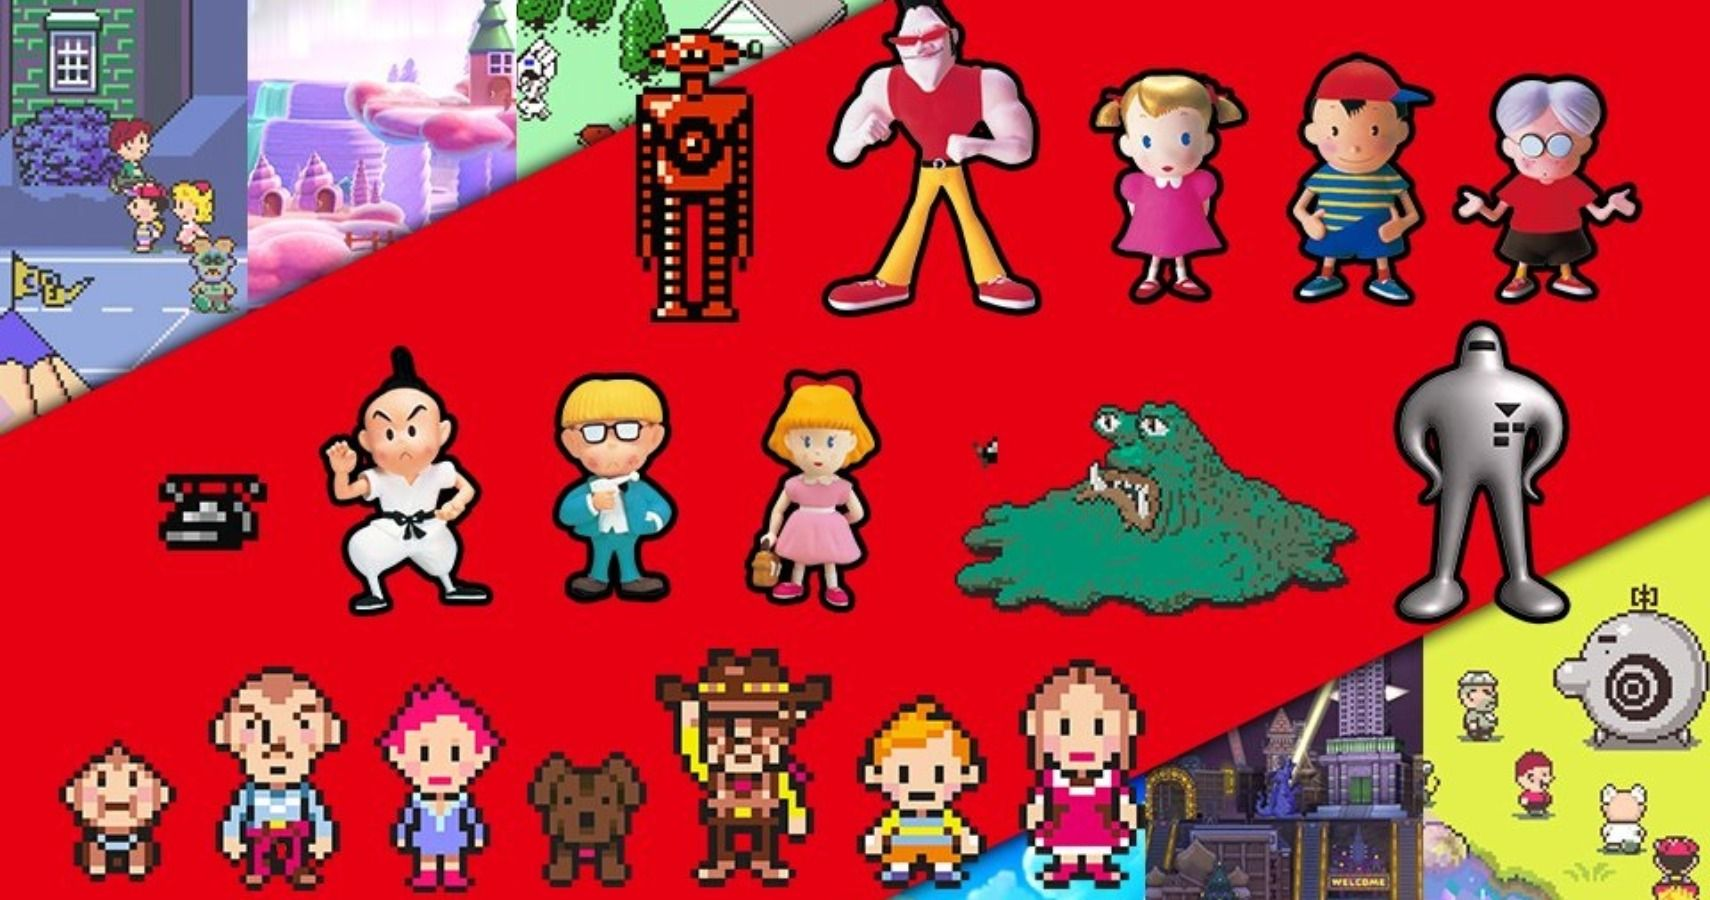 Nintendo Celebrates Earthbound's 30th Anniversary With